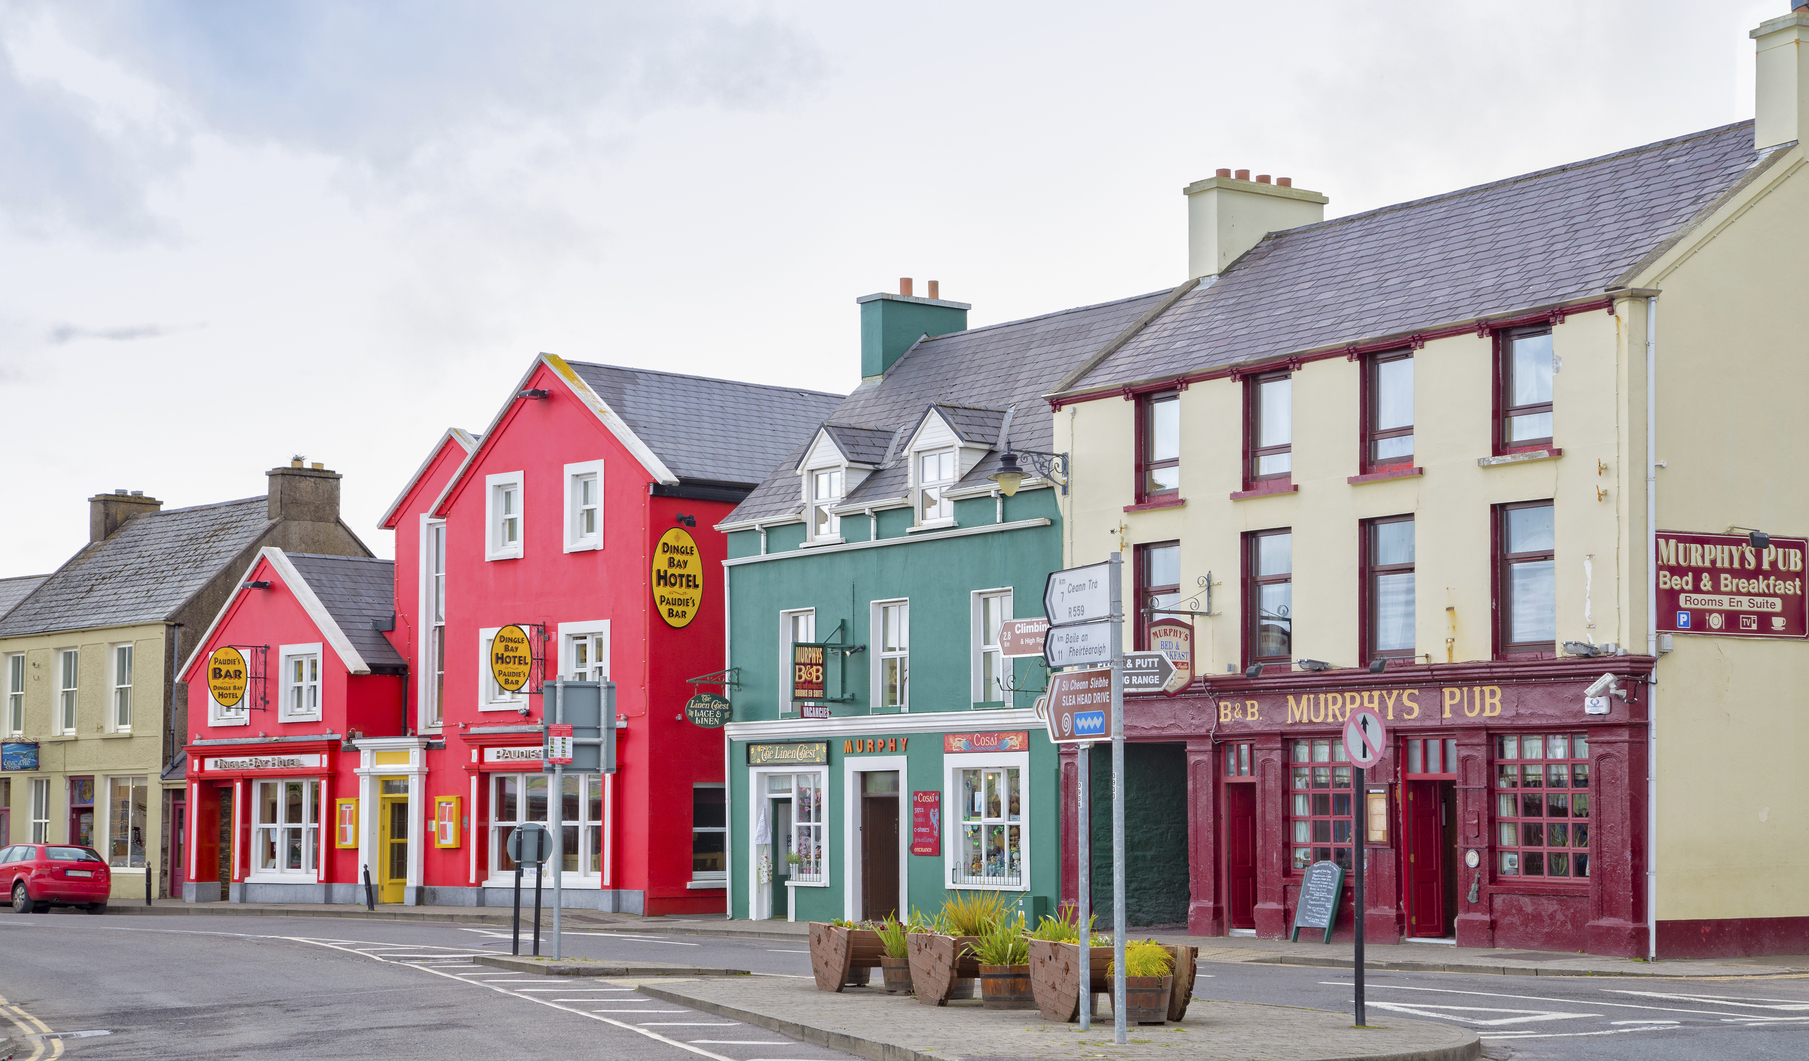 Row of colorful buildings in Dingle, Ireland